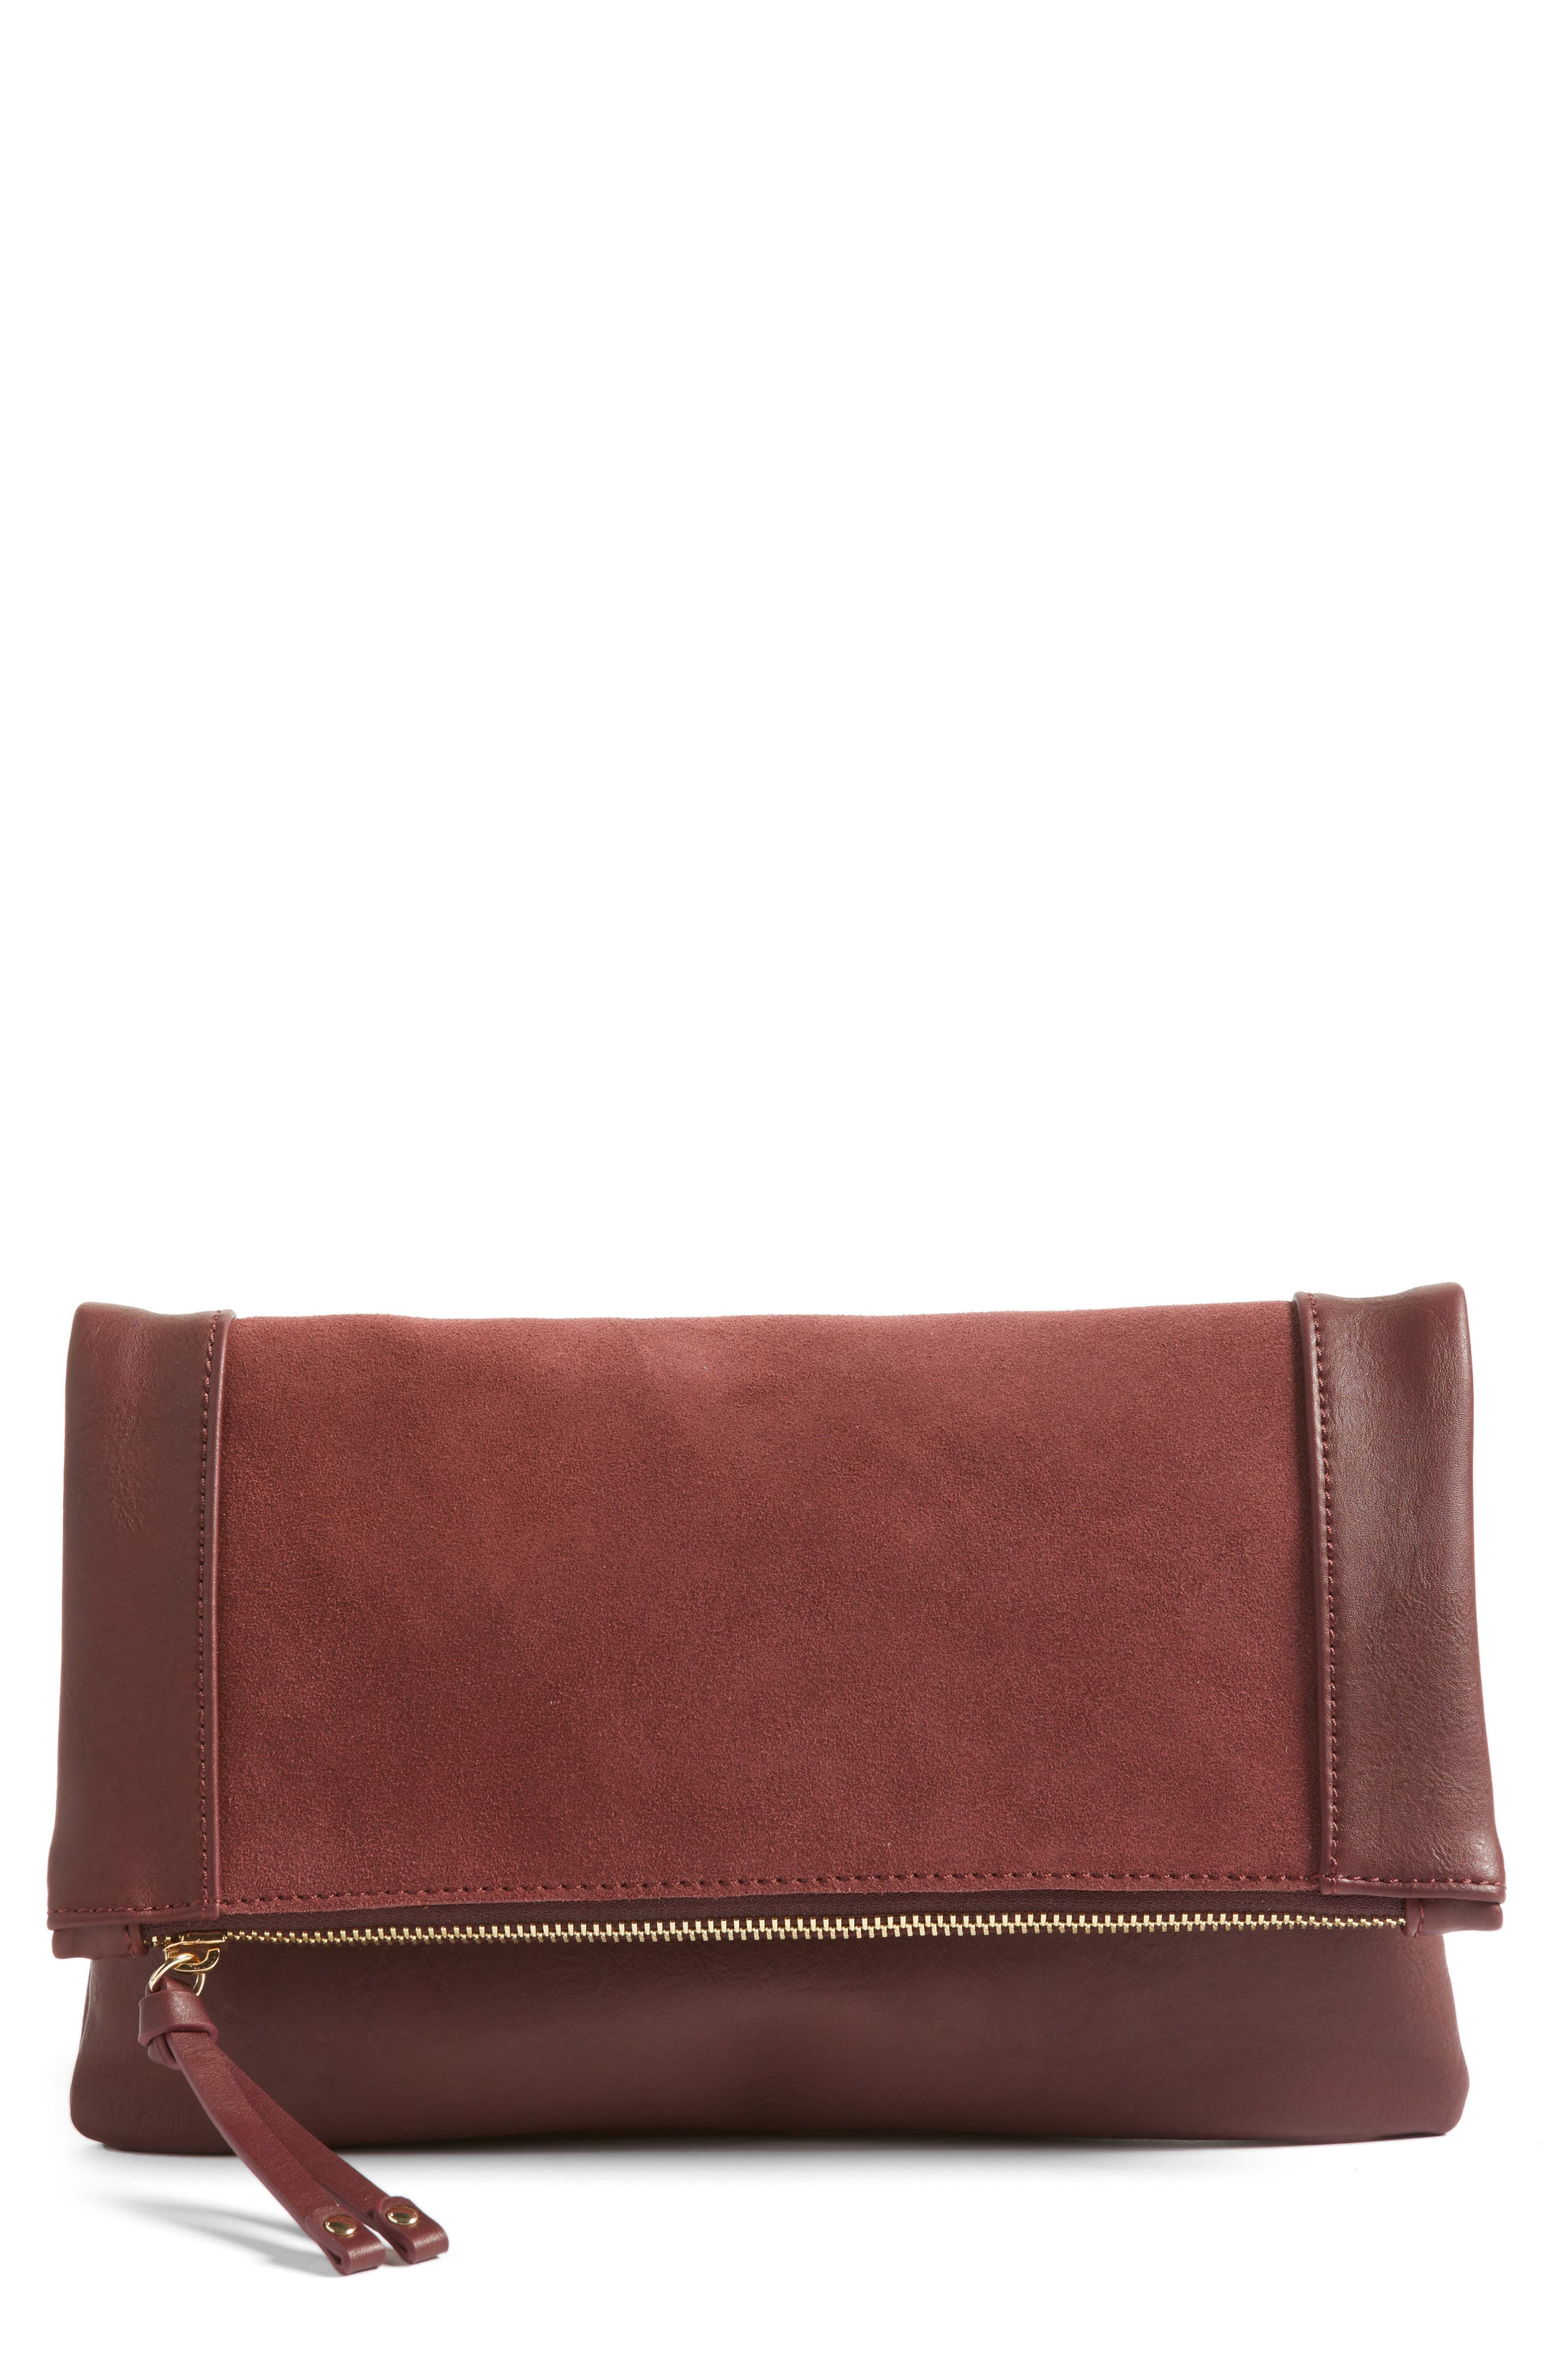 Alternate Image 1 Selected - Sole Society Jemma Suede Clutch